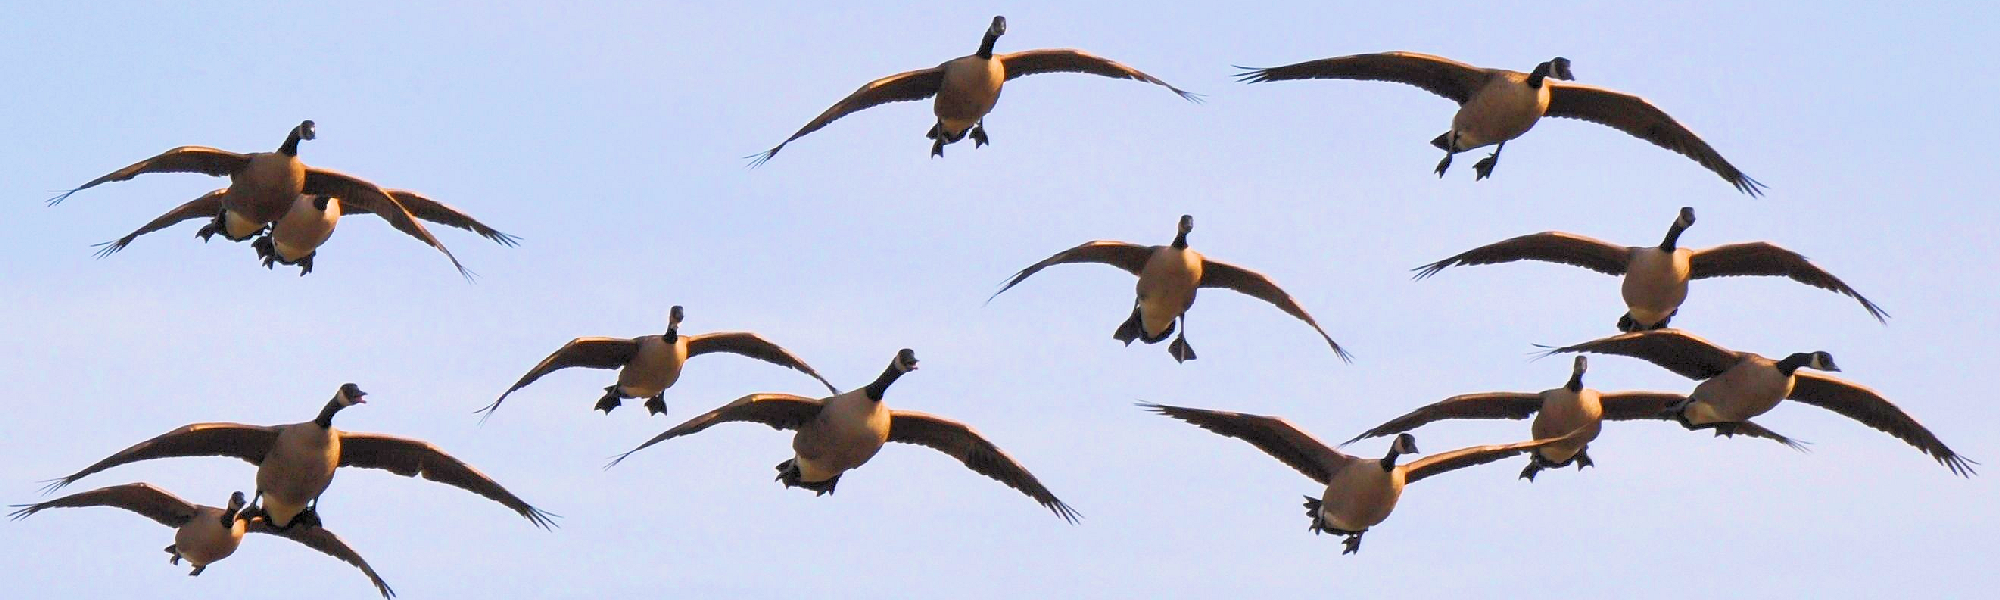 Texas Goose Hunting Guide - North Texas Waterfowl